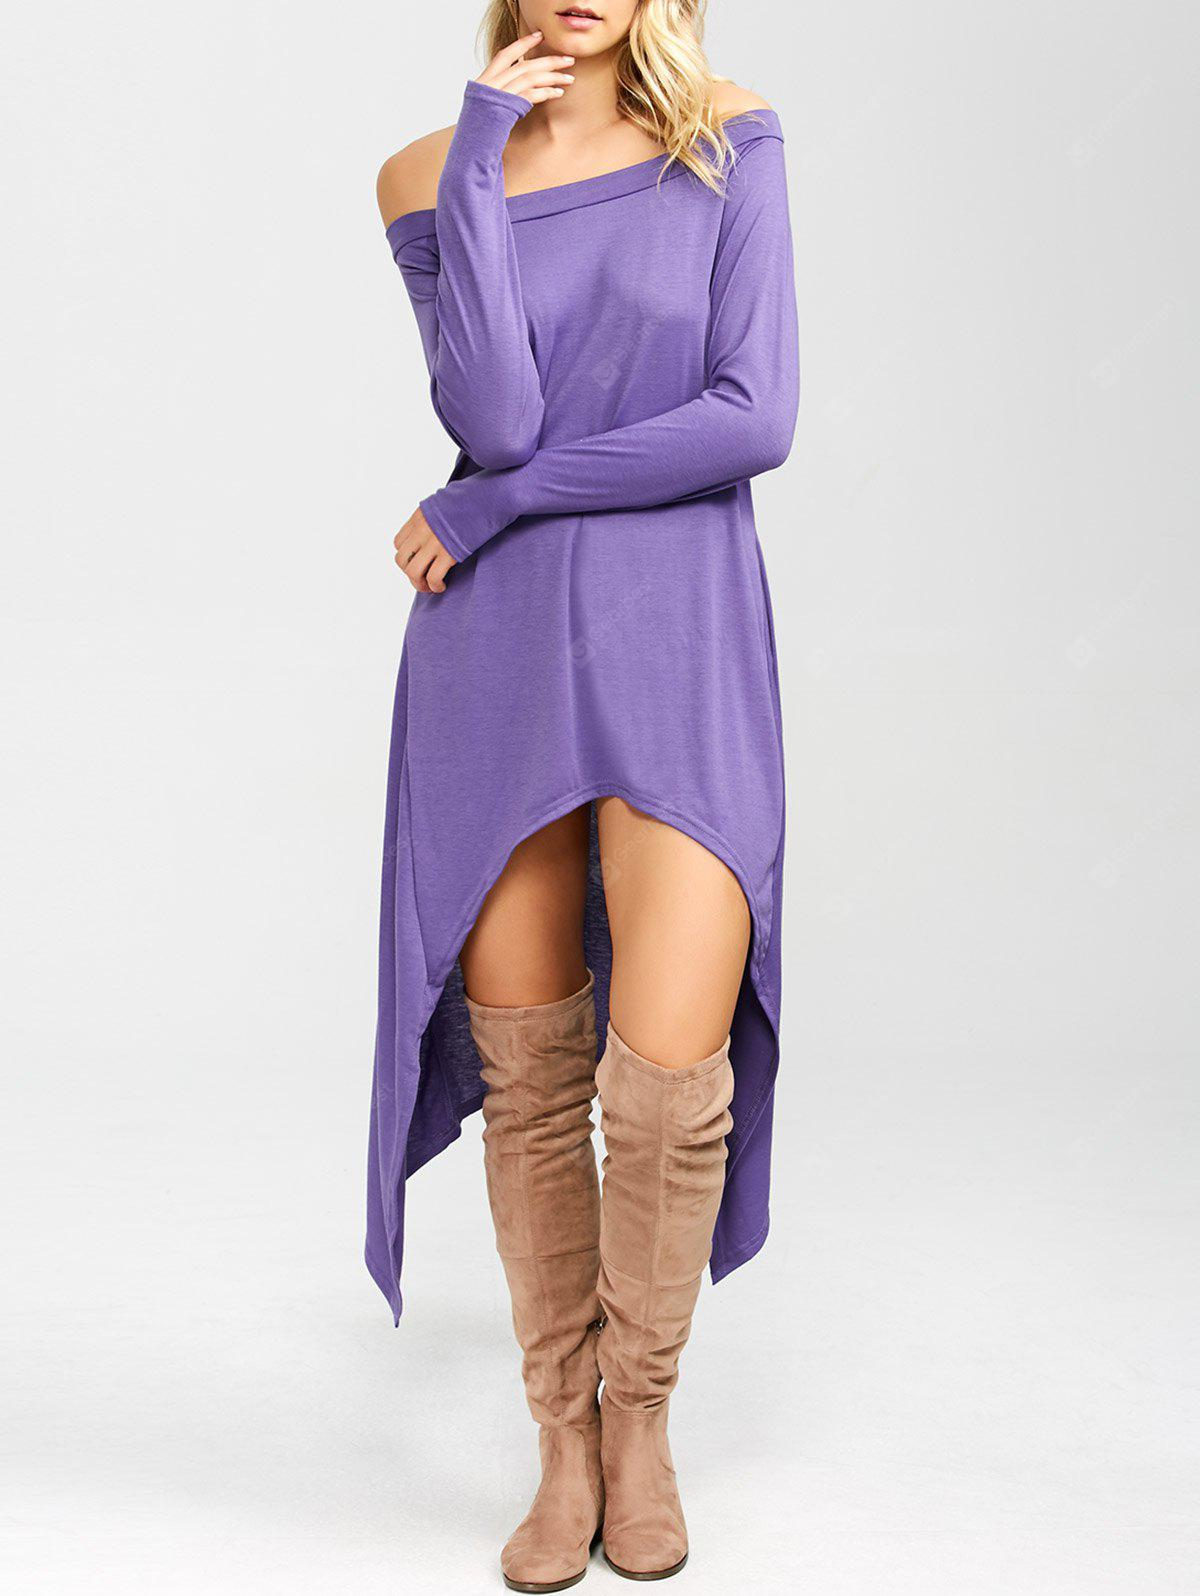 PURPLE High Low Convertible Off The Shoulder Dress